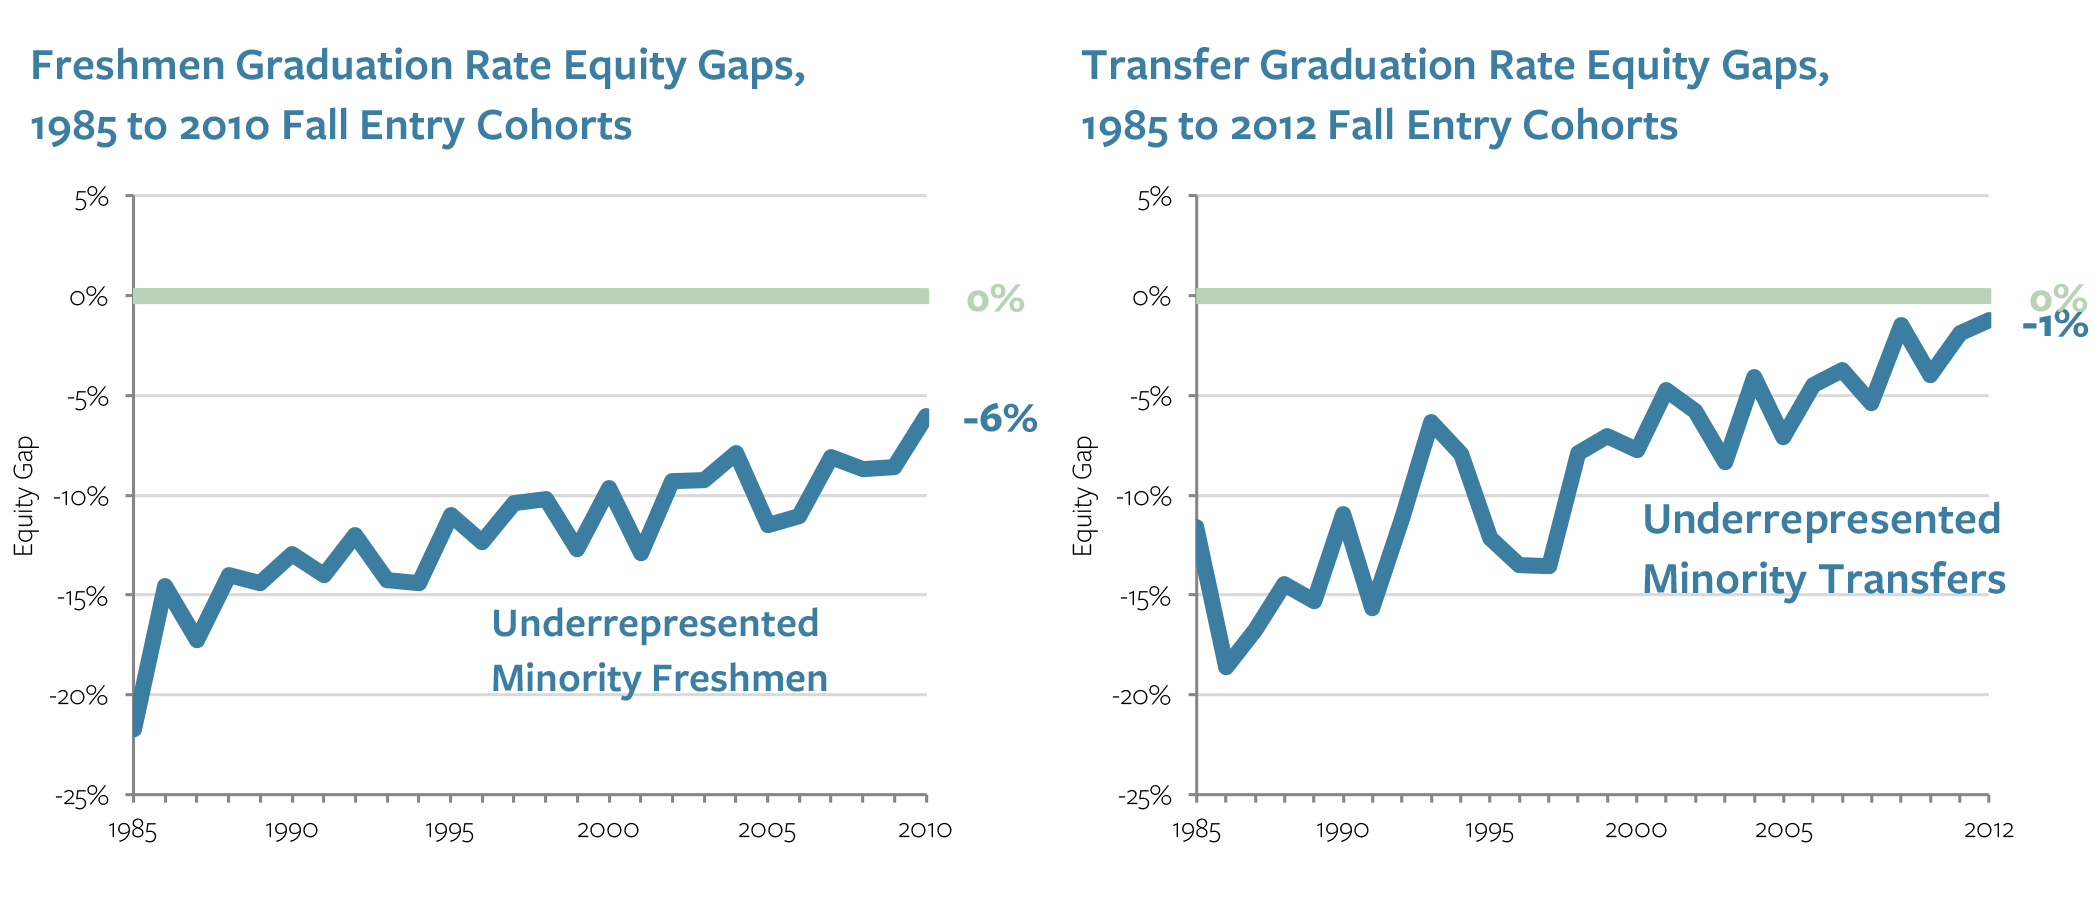 Freshmen and transfer graduation rate equity gaps